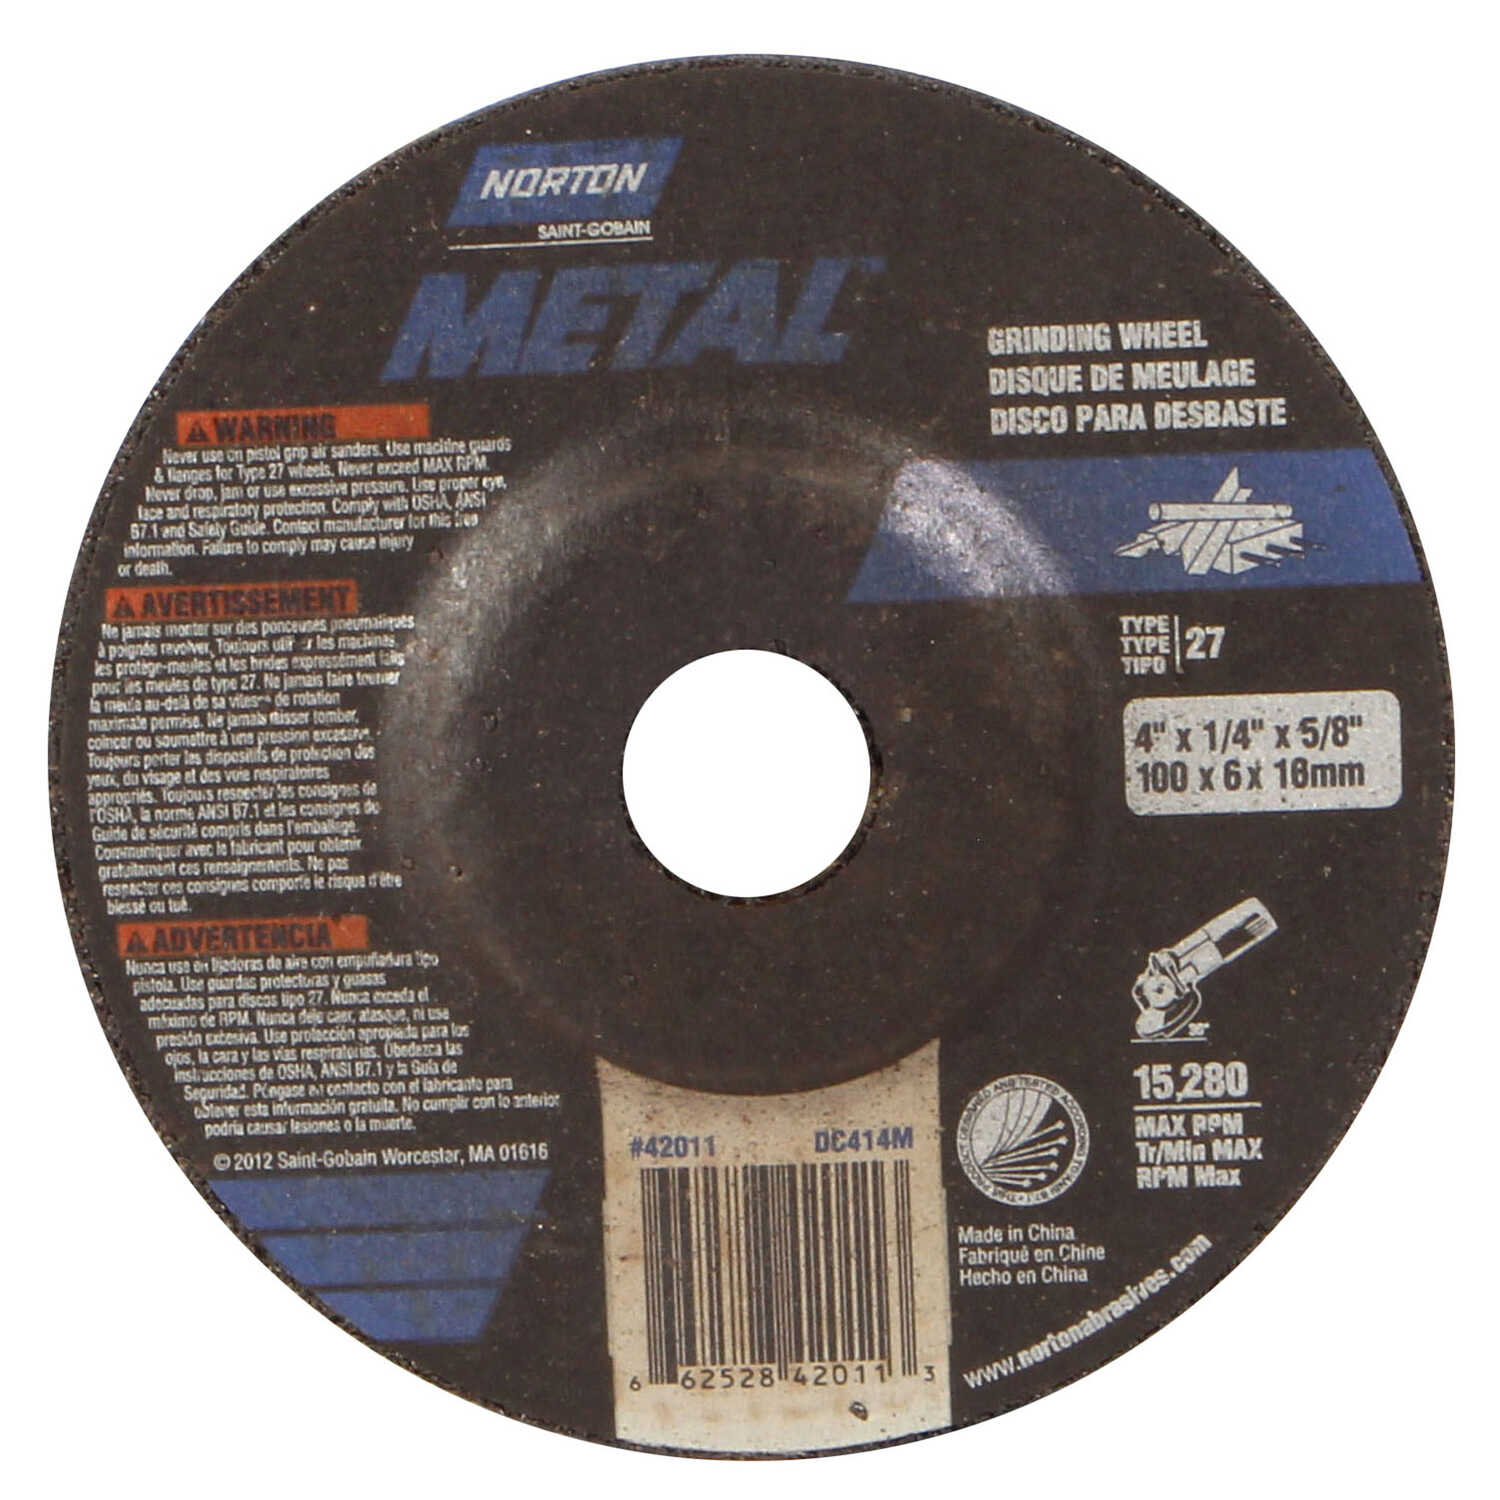 Norton  4 in. Dia. x 1/4 in. thick  x 5/8 in.   Aluminum Oxide  Grinding Wheel  15280 rpm 1 pc.